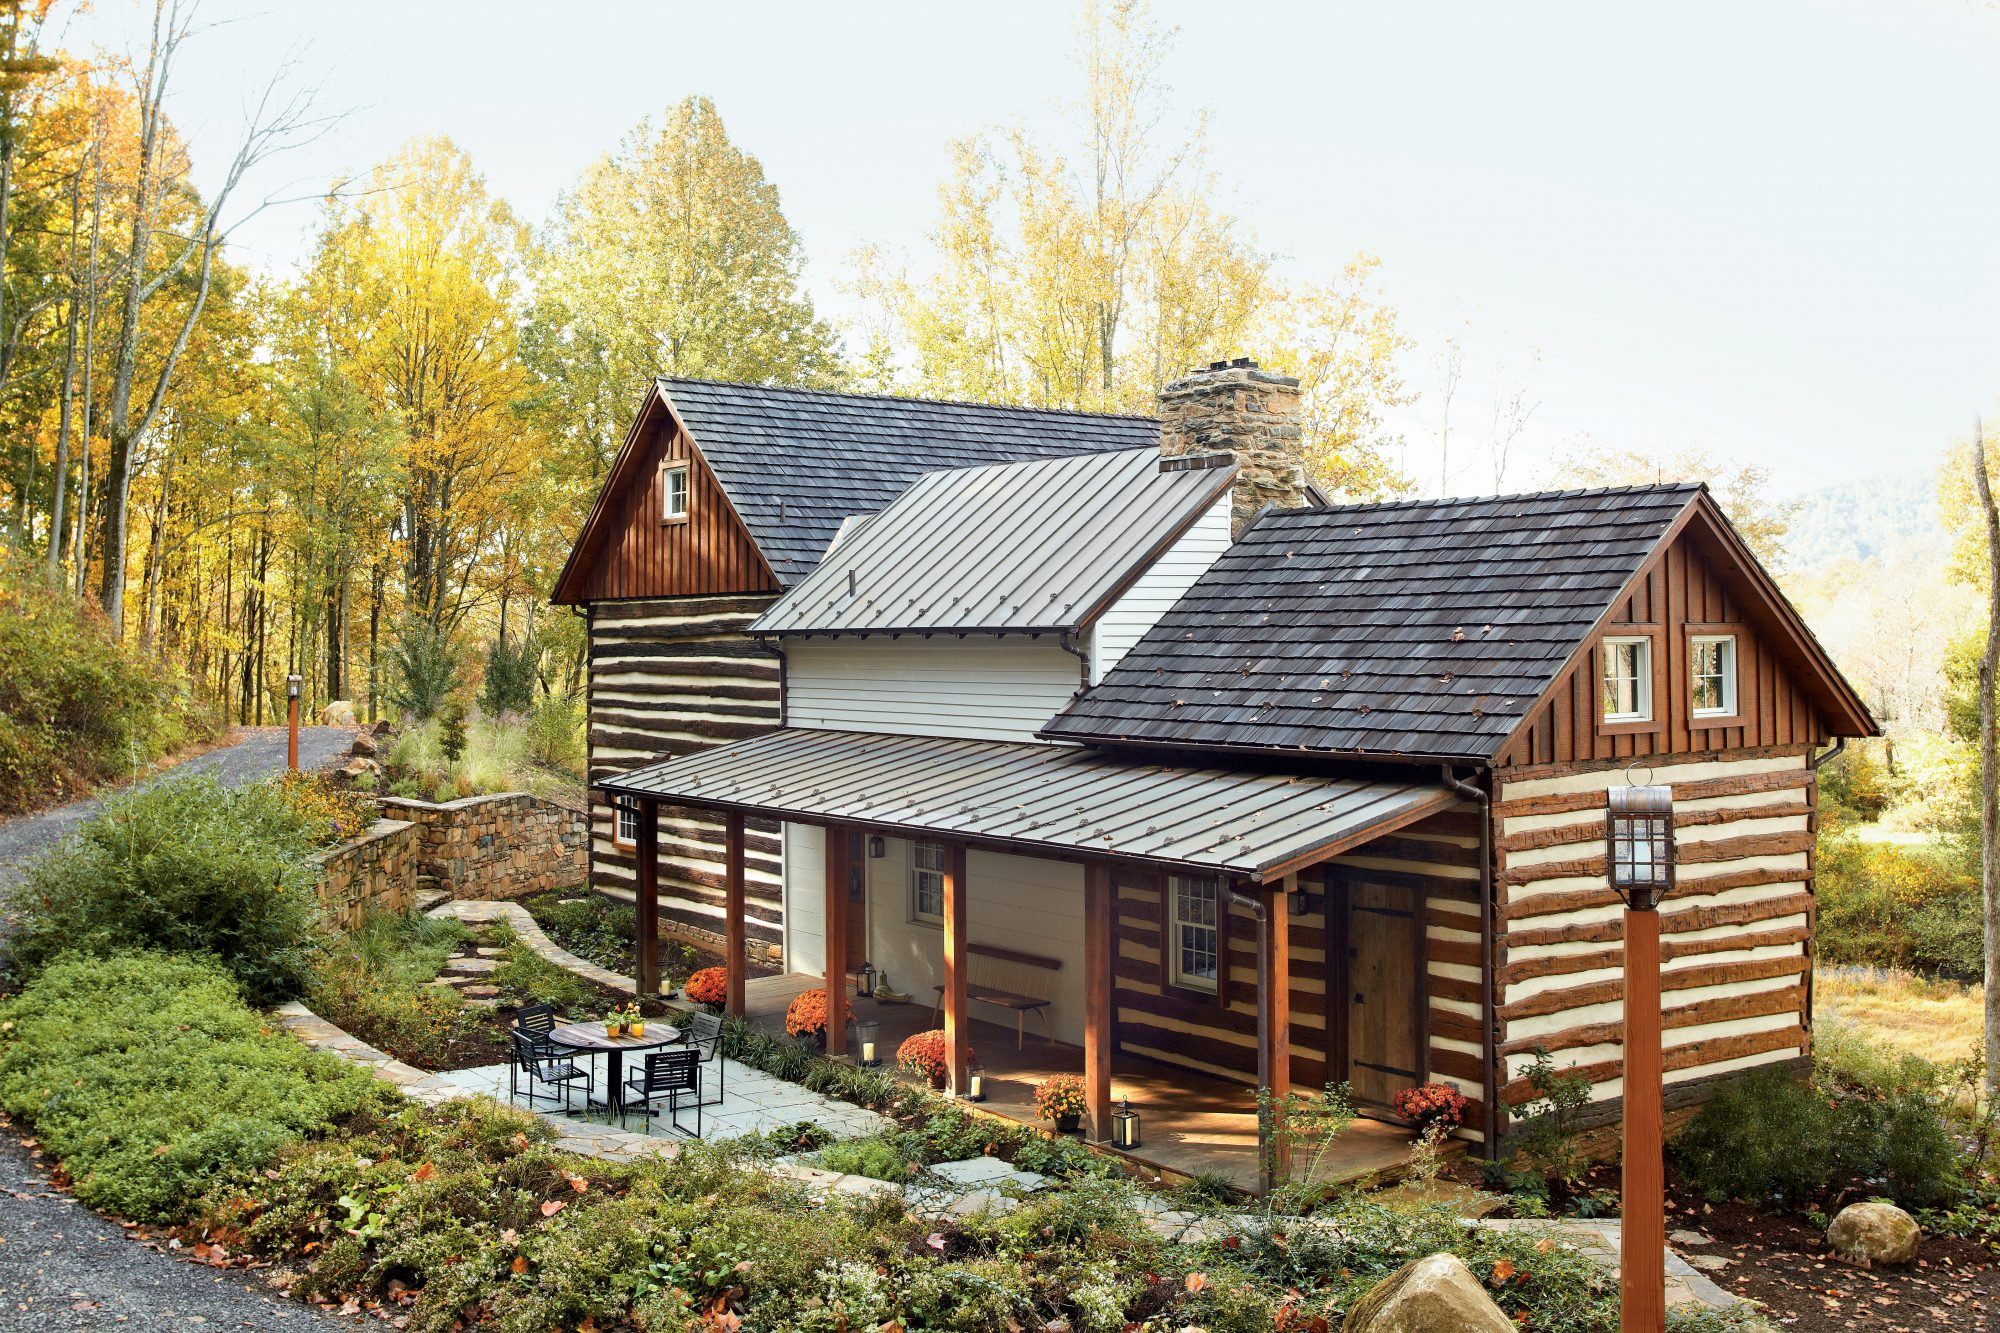 be cabins real lets create designs time that consuming siding home log and faux interior you expensive cabin would with